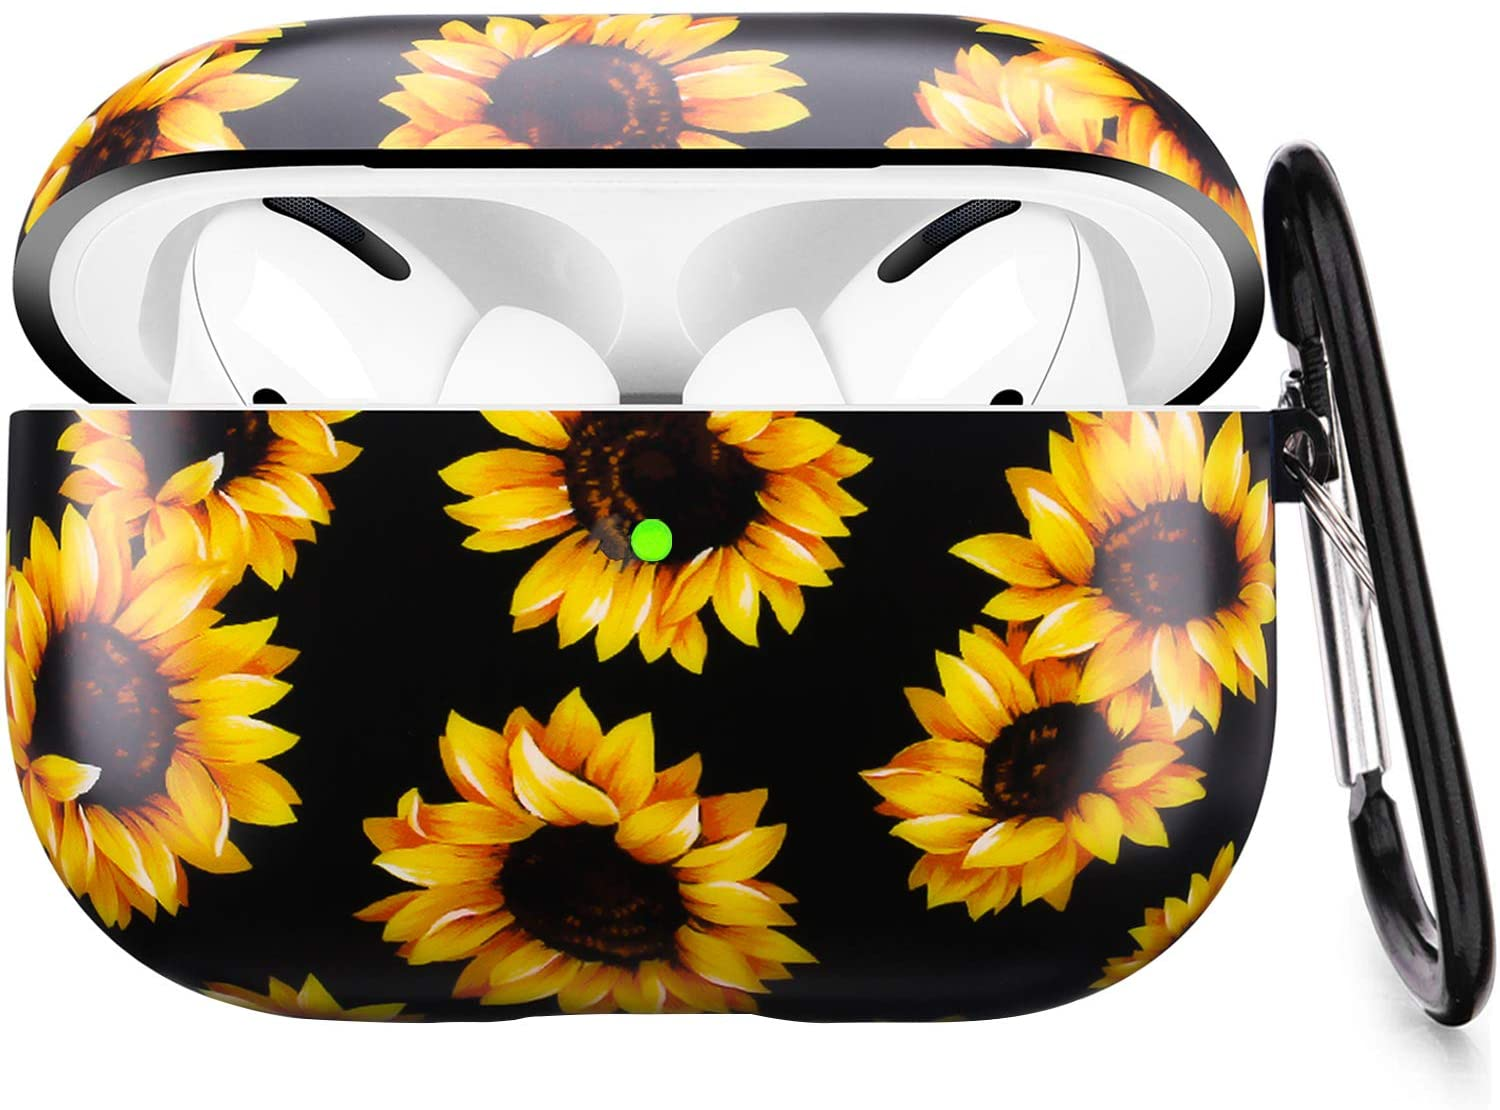 Airpods Pro Case - LitoDream Sunflower Floral Apple Airpods